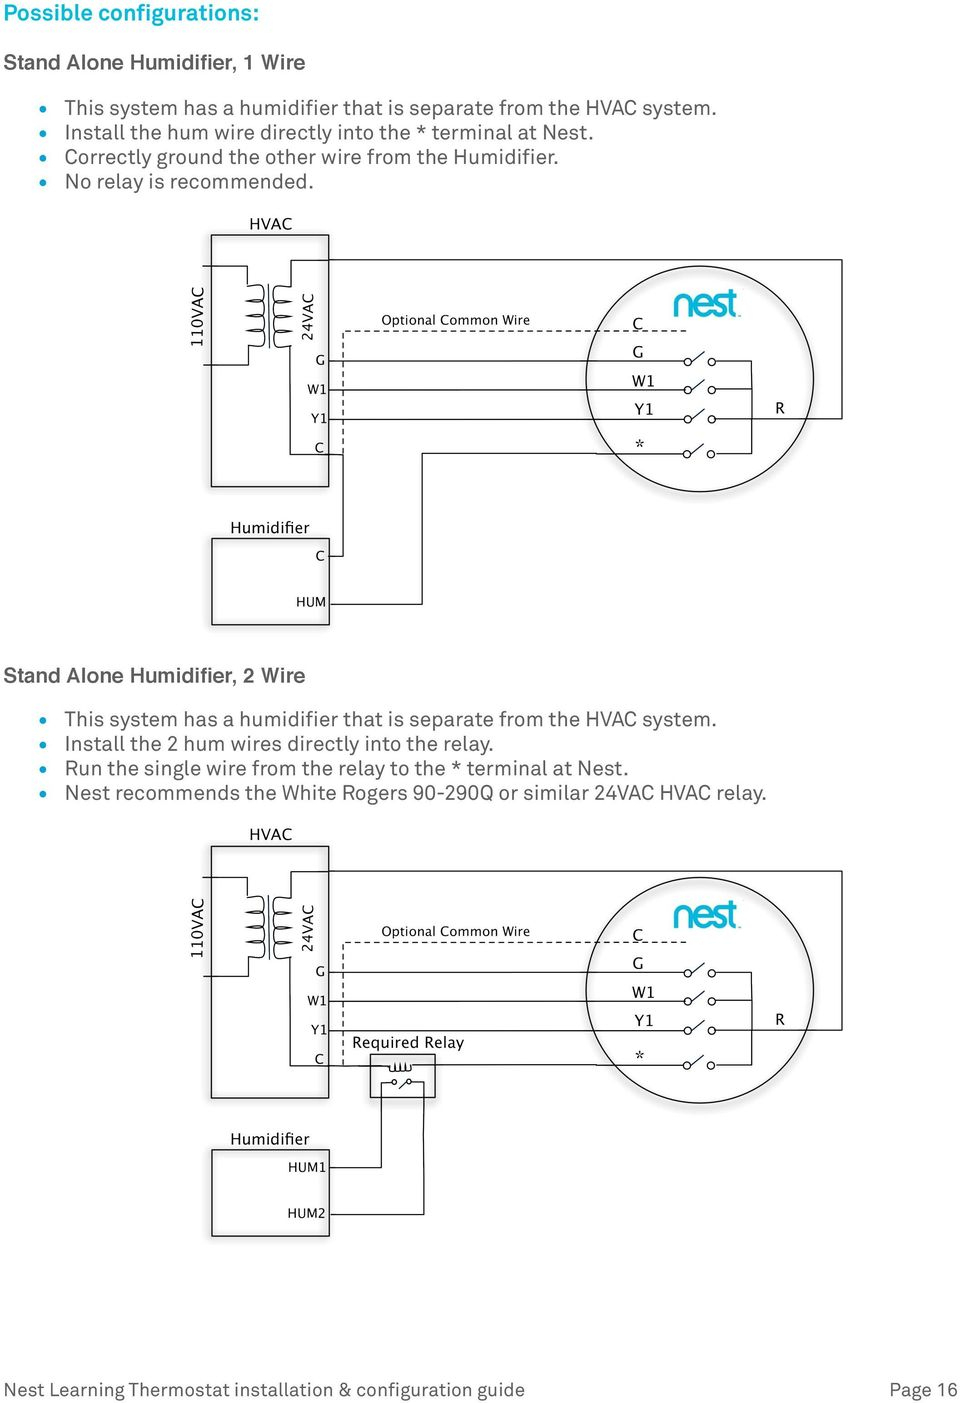 Nest Learning Thermostat Pro Installation & Configuration Guide - Pdf - Nest Wiring Diagram Humidifier